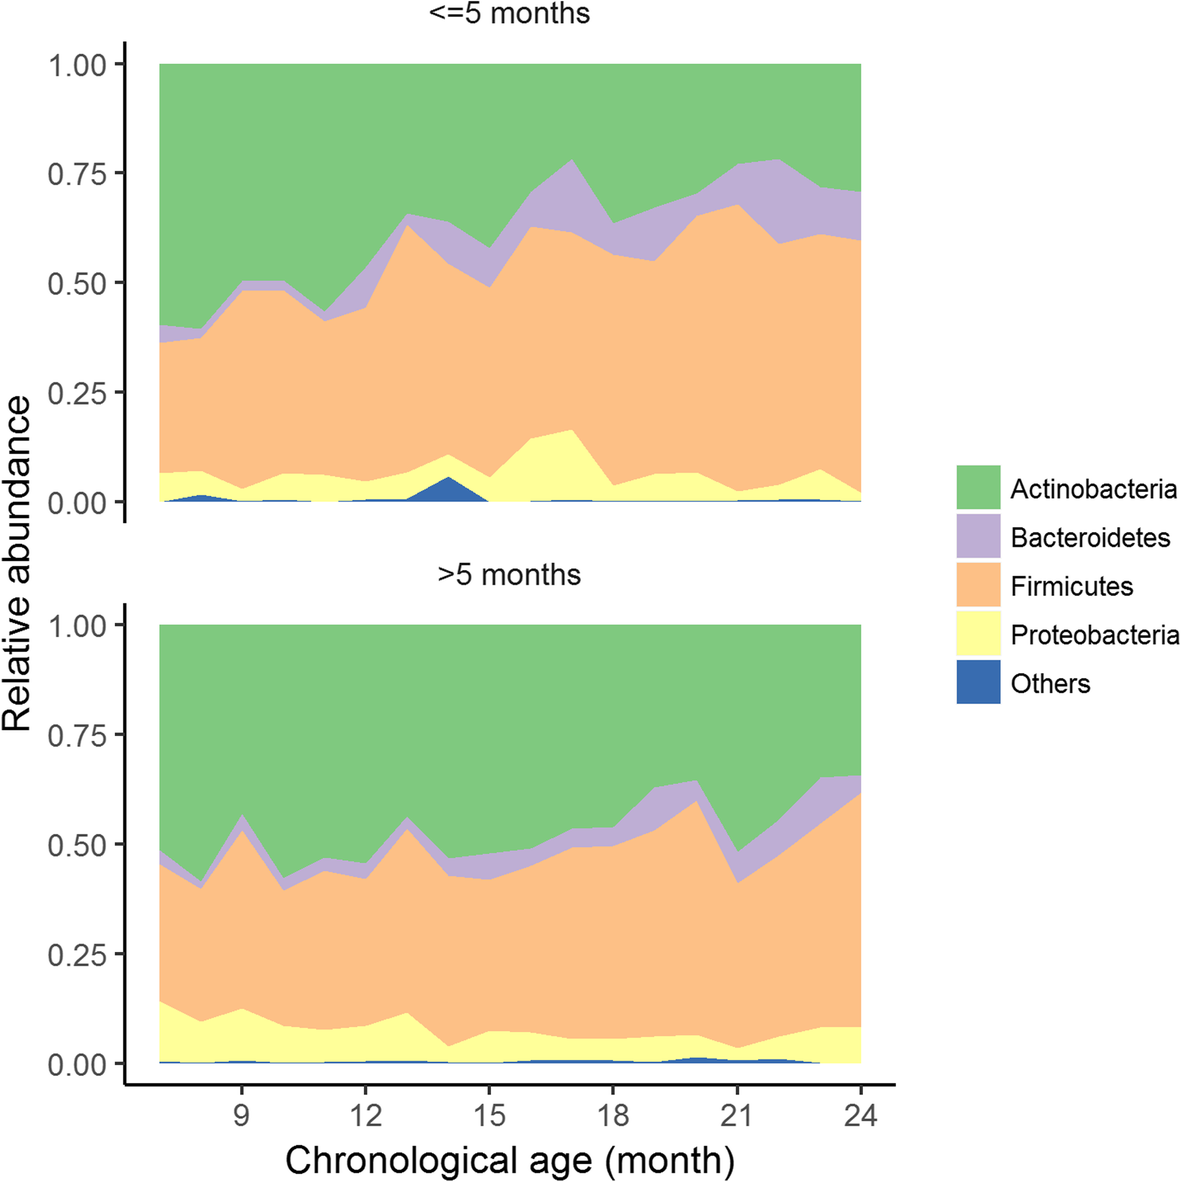 metamicrobiomeR: an R package for analysis of microbiome